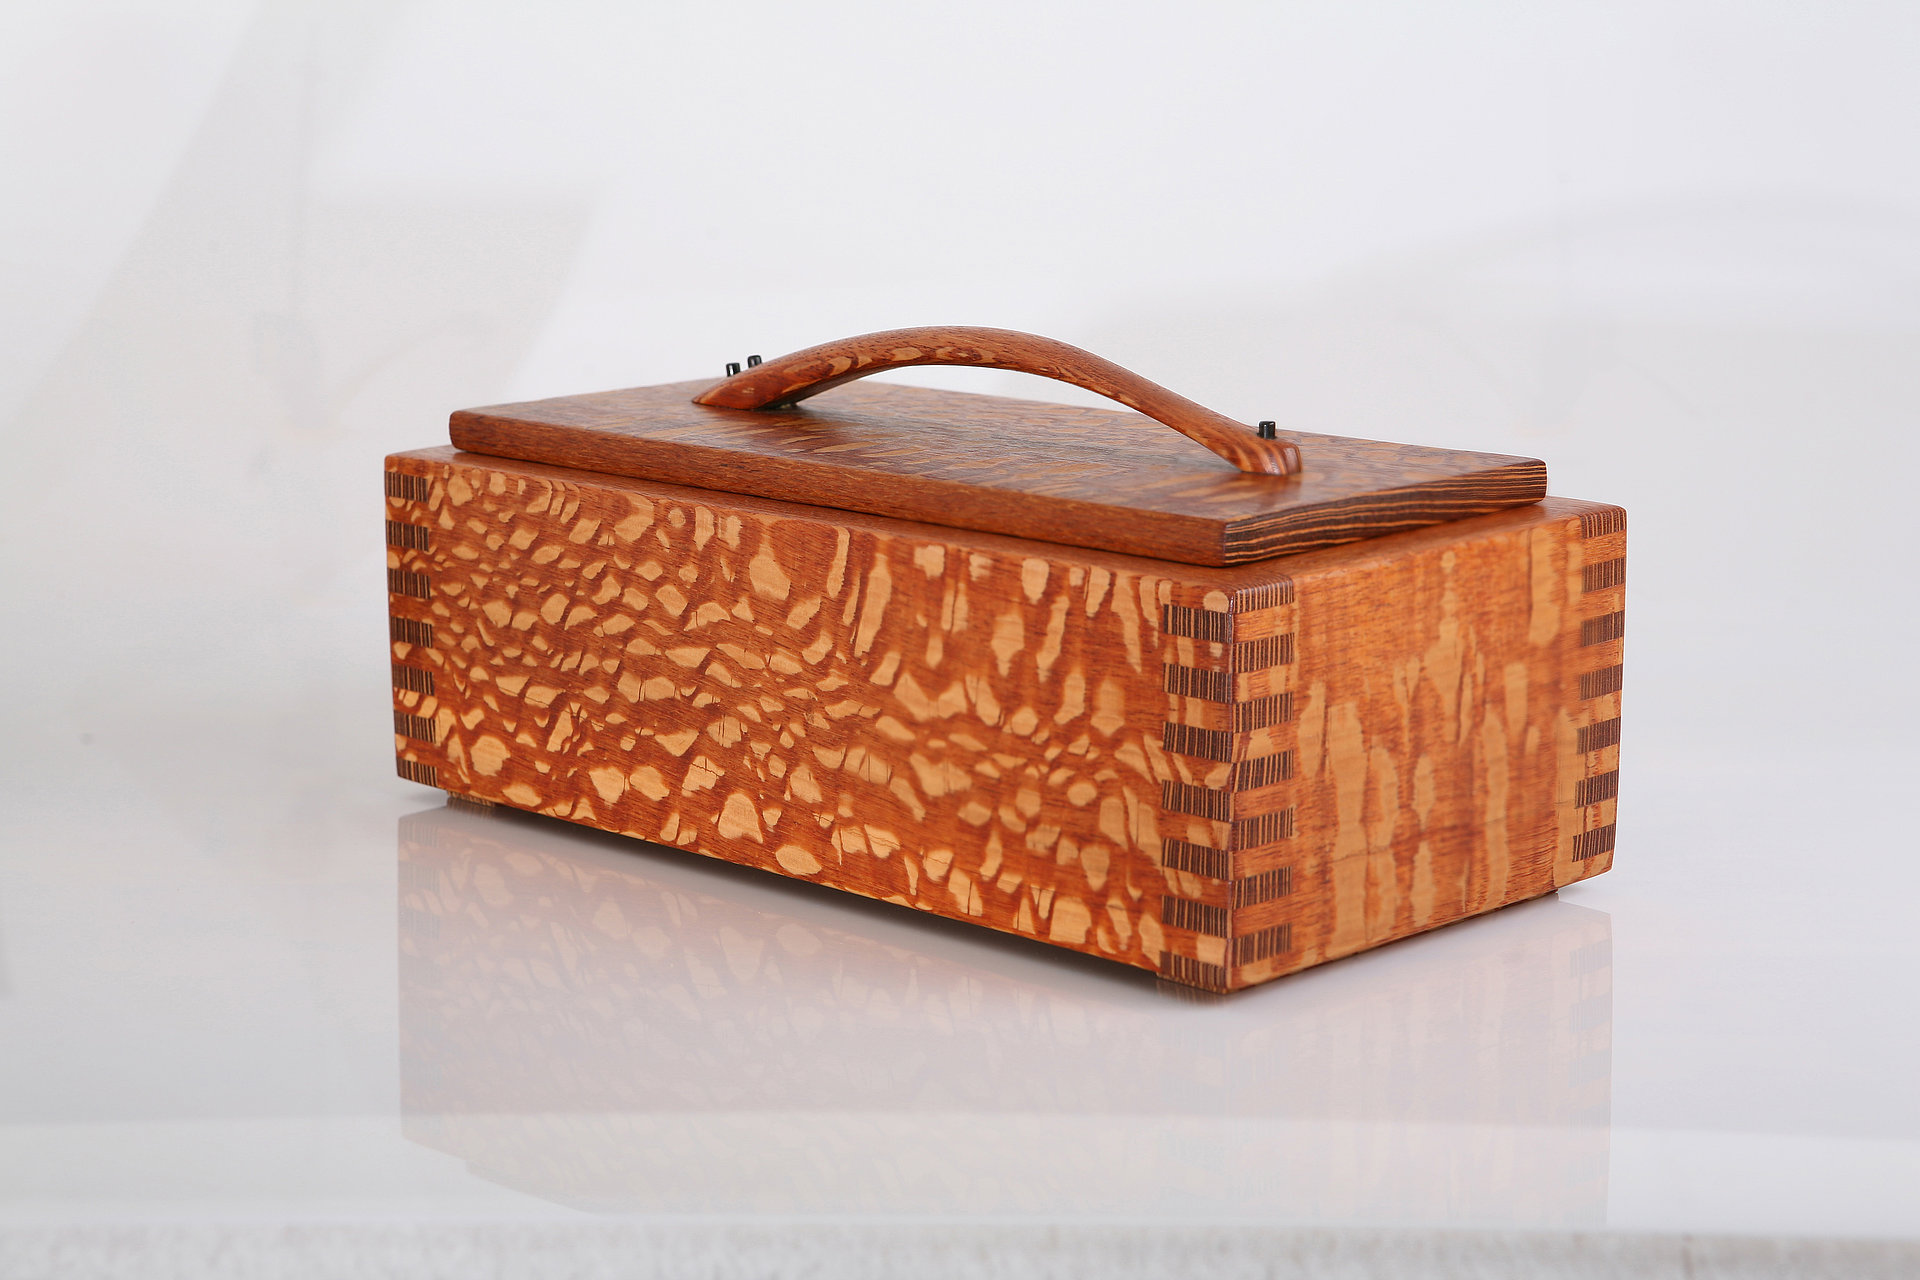 Lacewood jewelry box / keepsake box